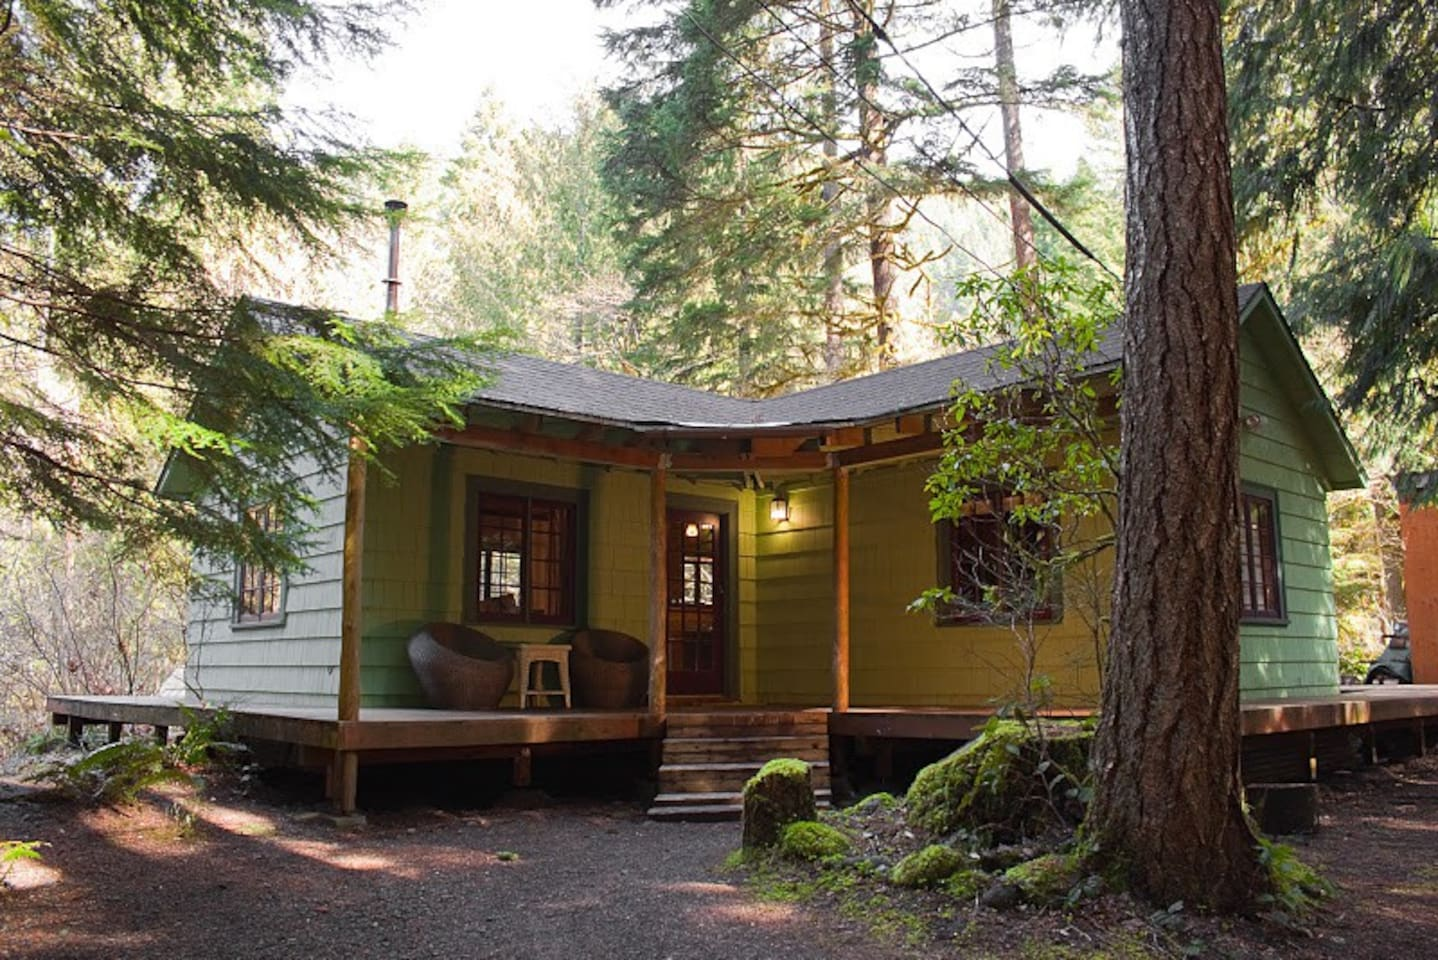 santiam newer rent has oregon clear older for cabin resort near cabins that pin and the lake pass rentals